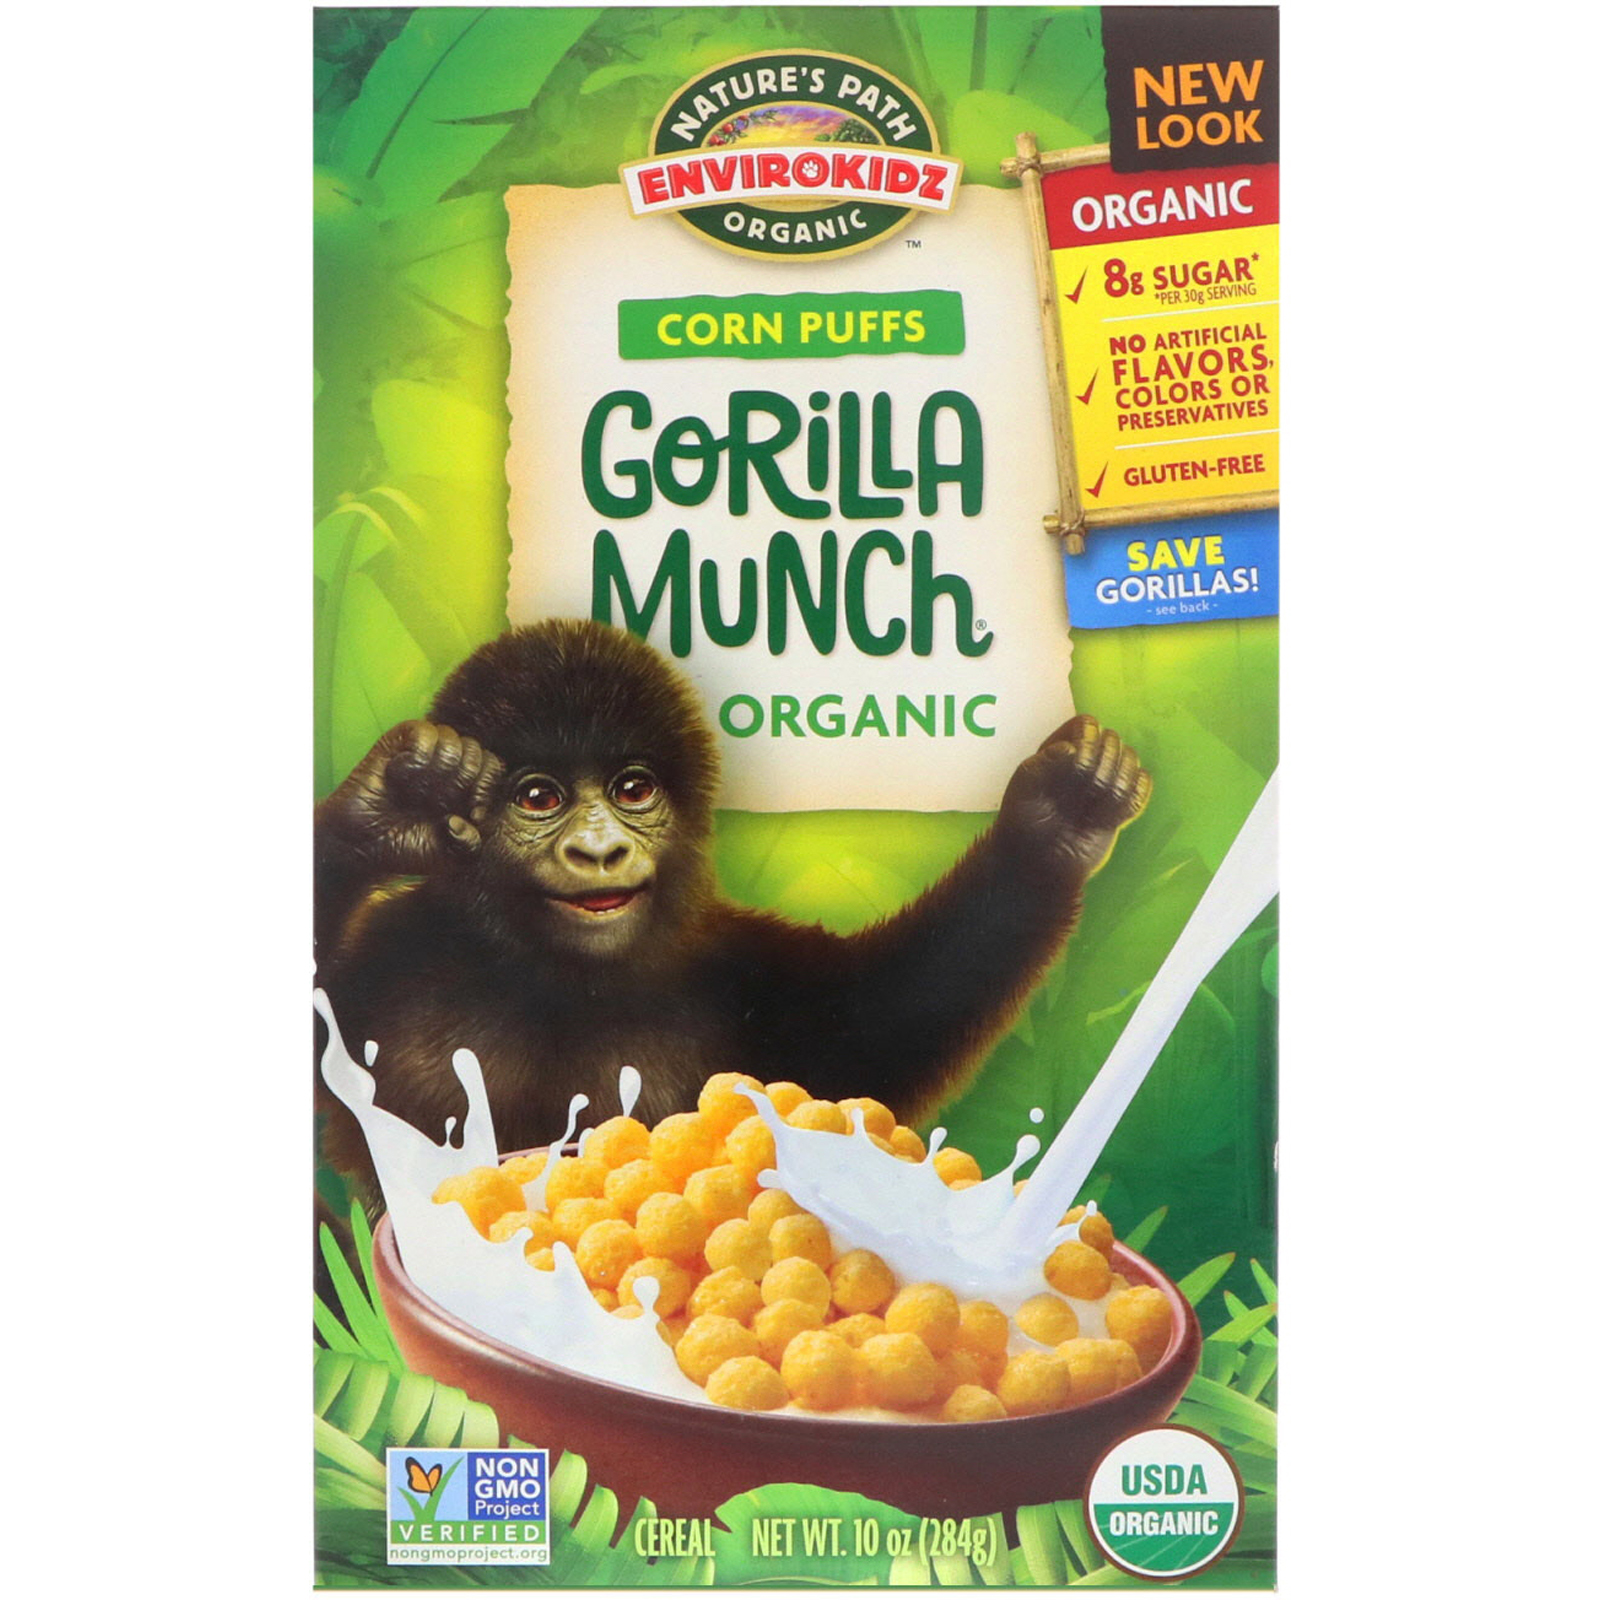 Nature's Path, EnviroKidz, Organic Corn Puffs Gorilla